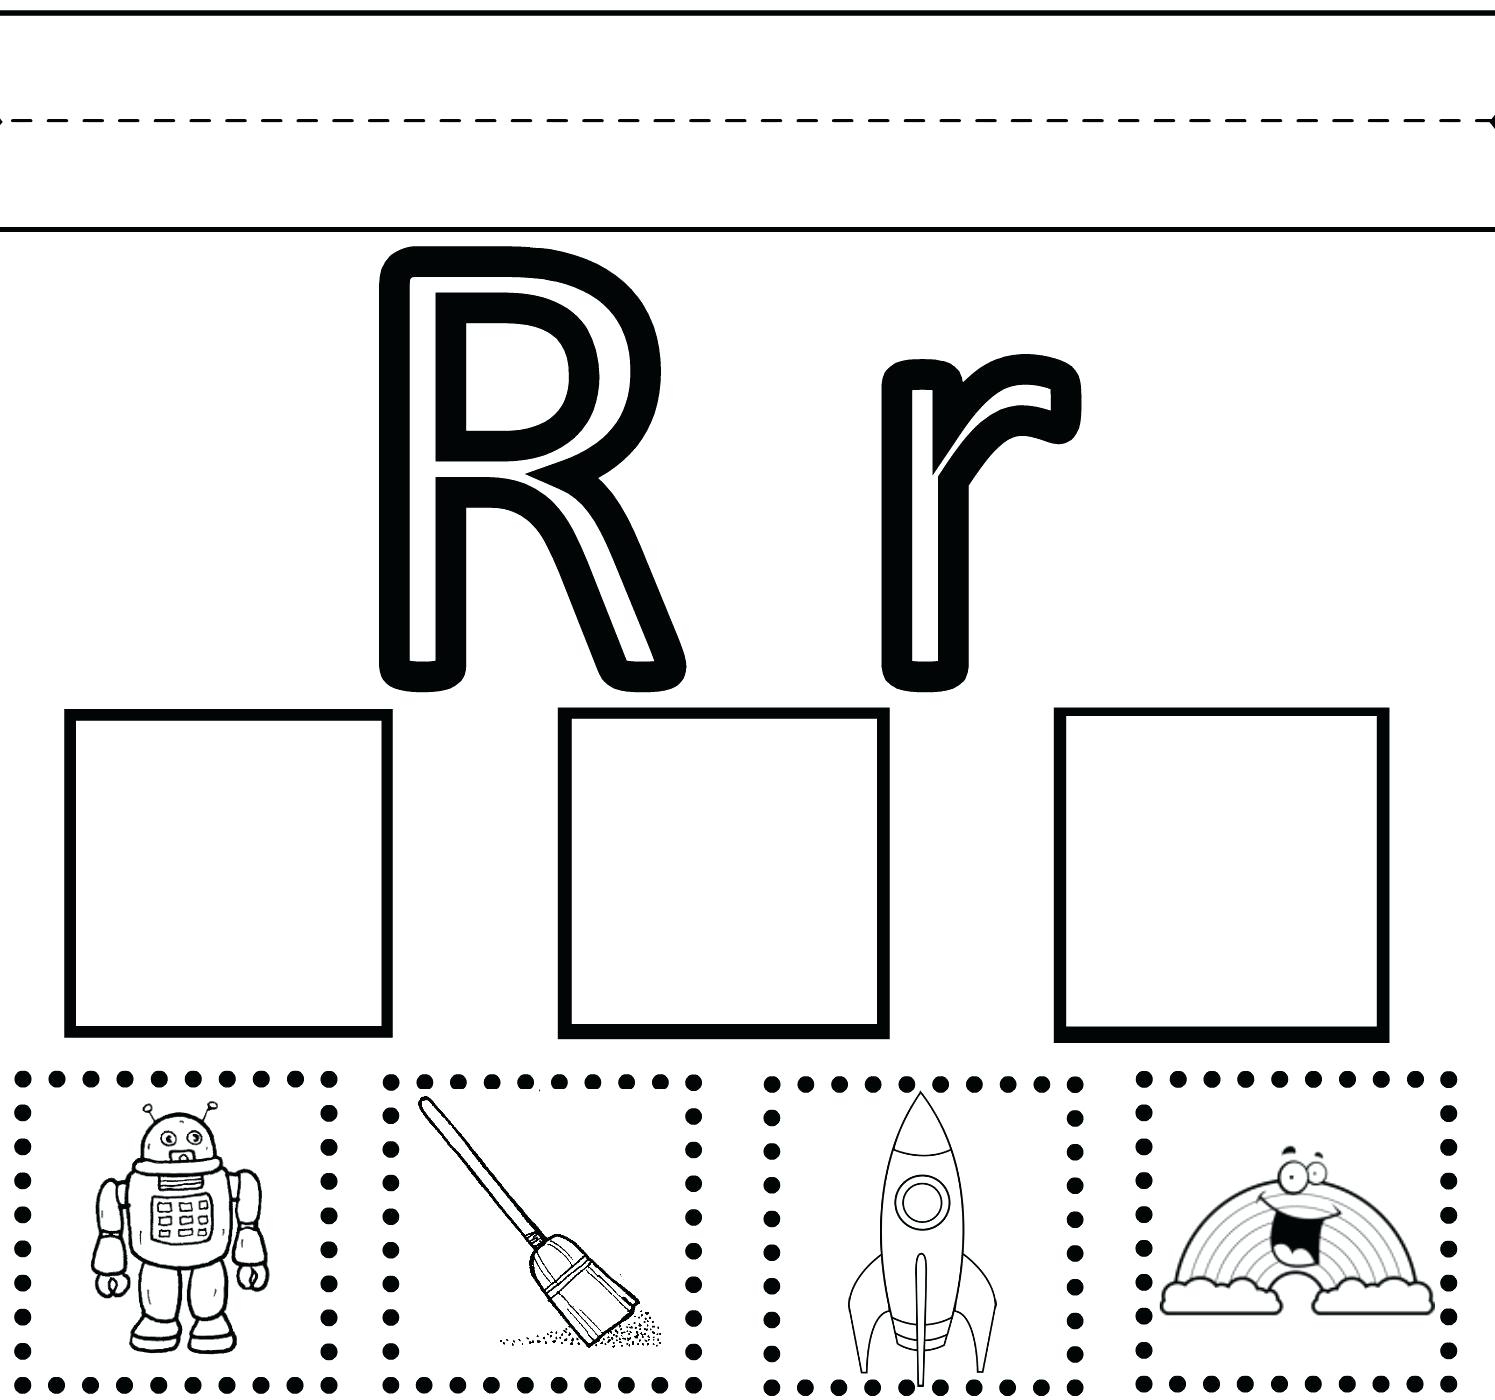 Letter R Worksheet For Kindergarten Letter R Worksheets Kindergarten - Free Printable Preschool Worksheets For The Letter R